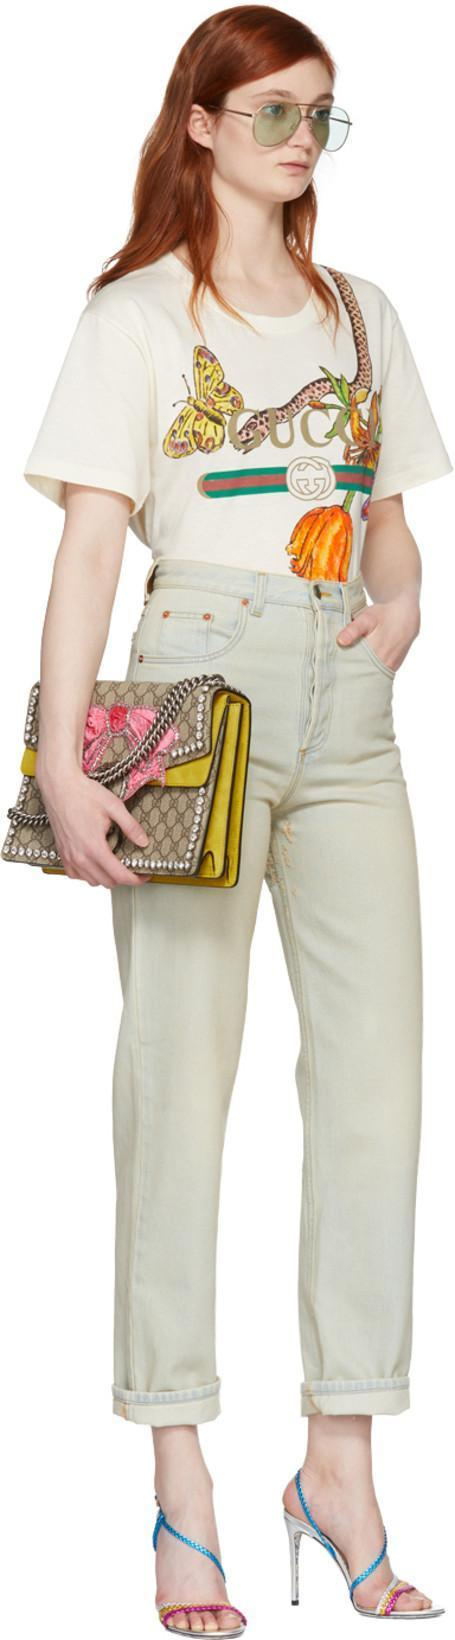 e8089d3d8db9 GUCCI Dionysus Medium Gg Supreme Canvas Shoulder Bag With Crystal Bow in  Yellow